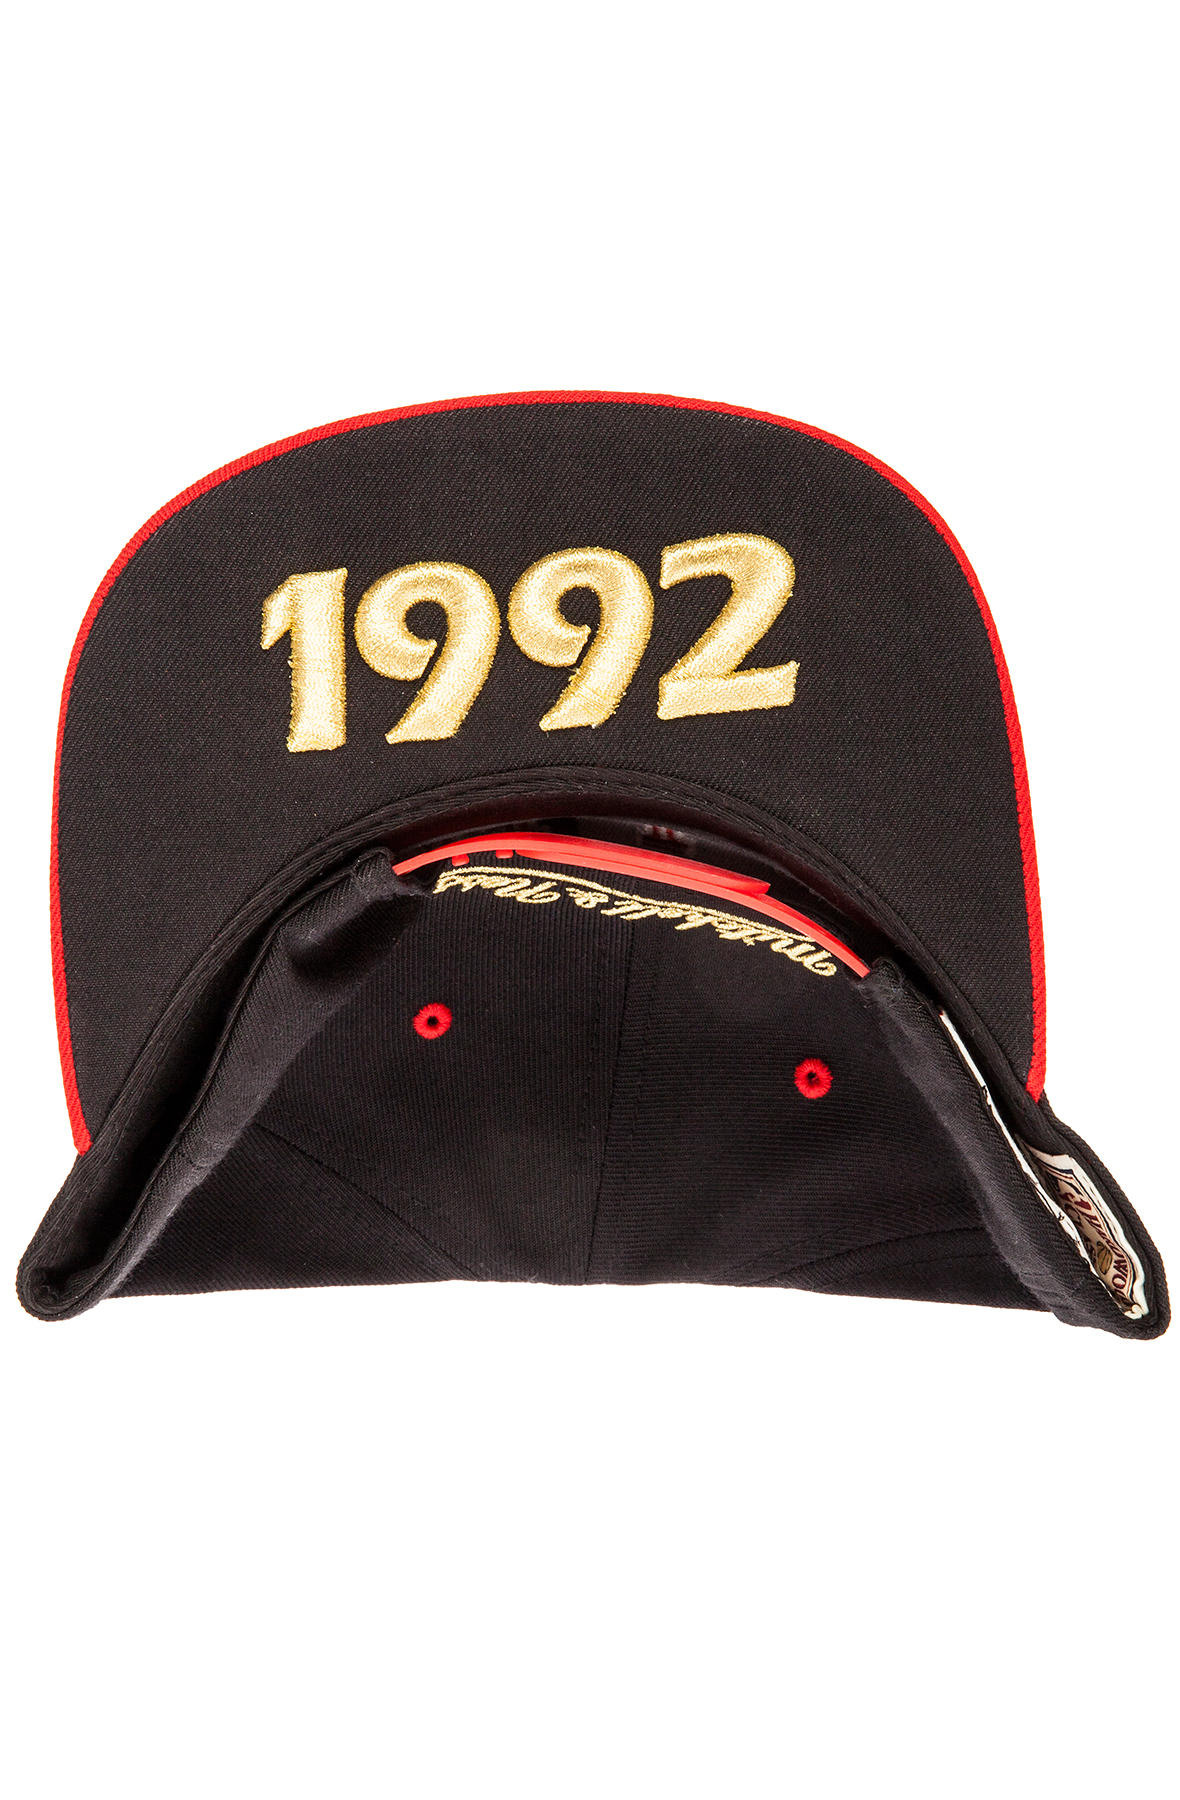 be6a4fbc6a1f1 Lyst - Mitchell   Ness The Chicago Bulls Commemorative Snapback Hat ...